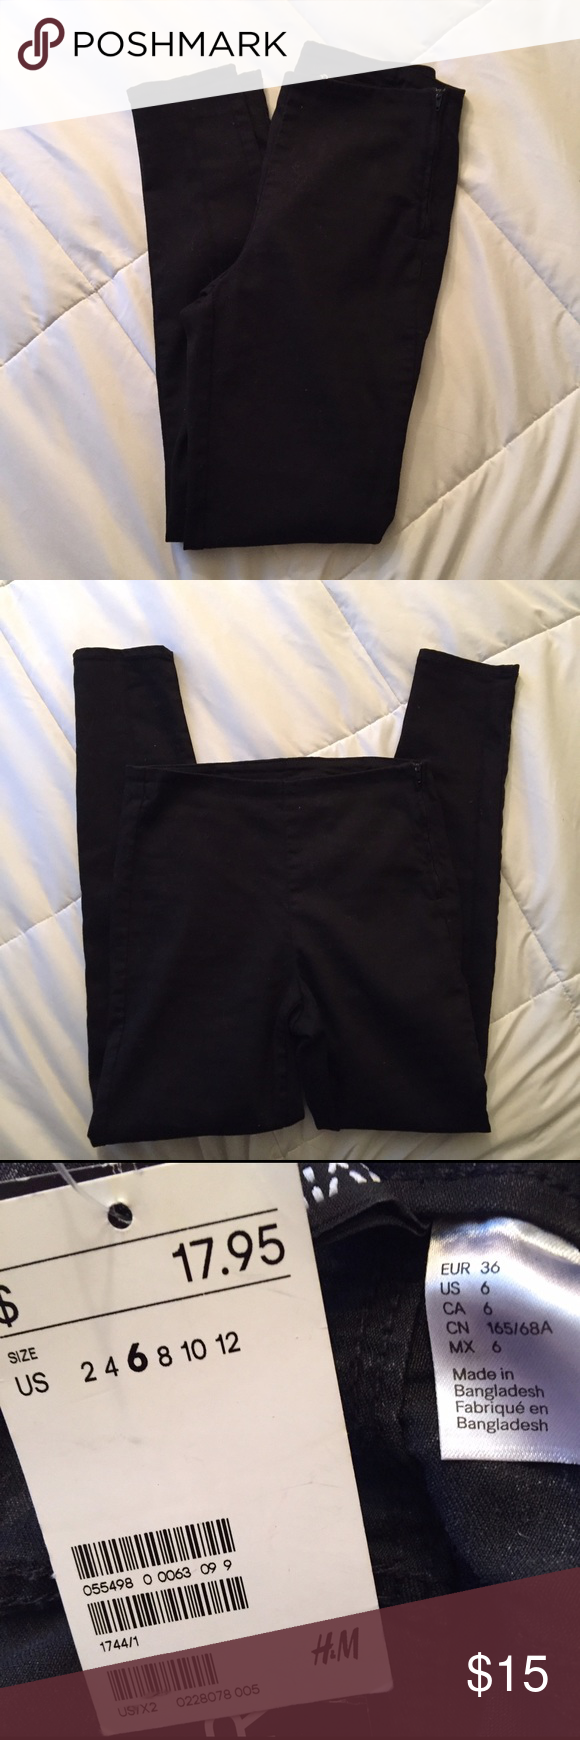 NWOT Divided black high waisted skinny pants Super cute and NWOT Divided black high waisted skinny pants. I usually wear a 4-6 and these must run small because they don't fit right. Would fit a size 4 best. In perfect condition, tried on but never worn. Divided Pants Skinny